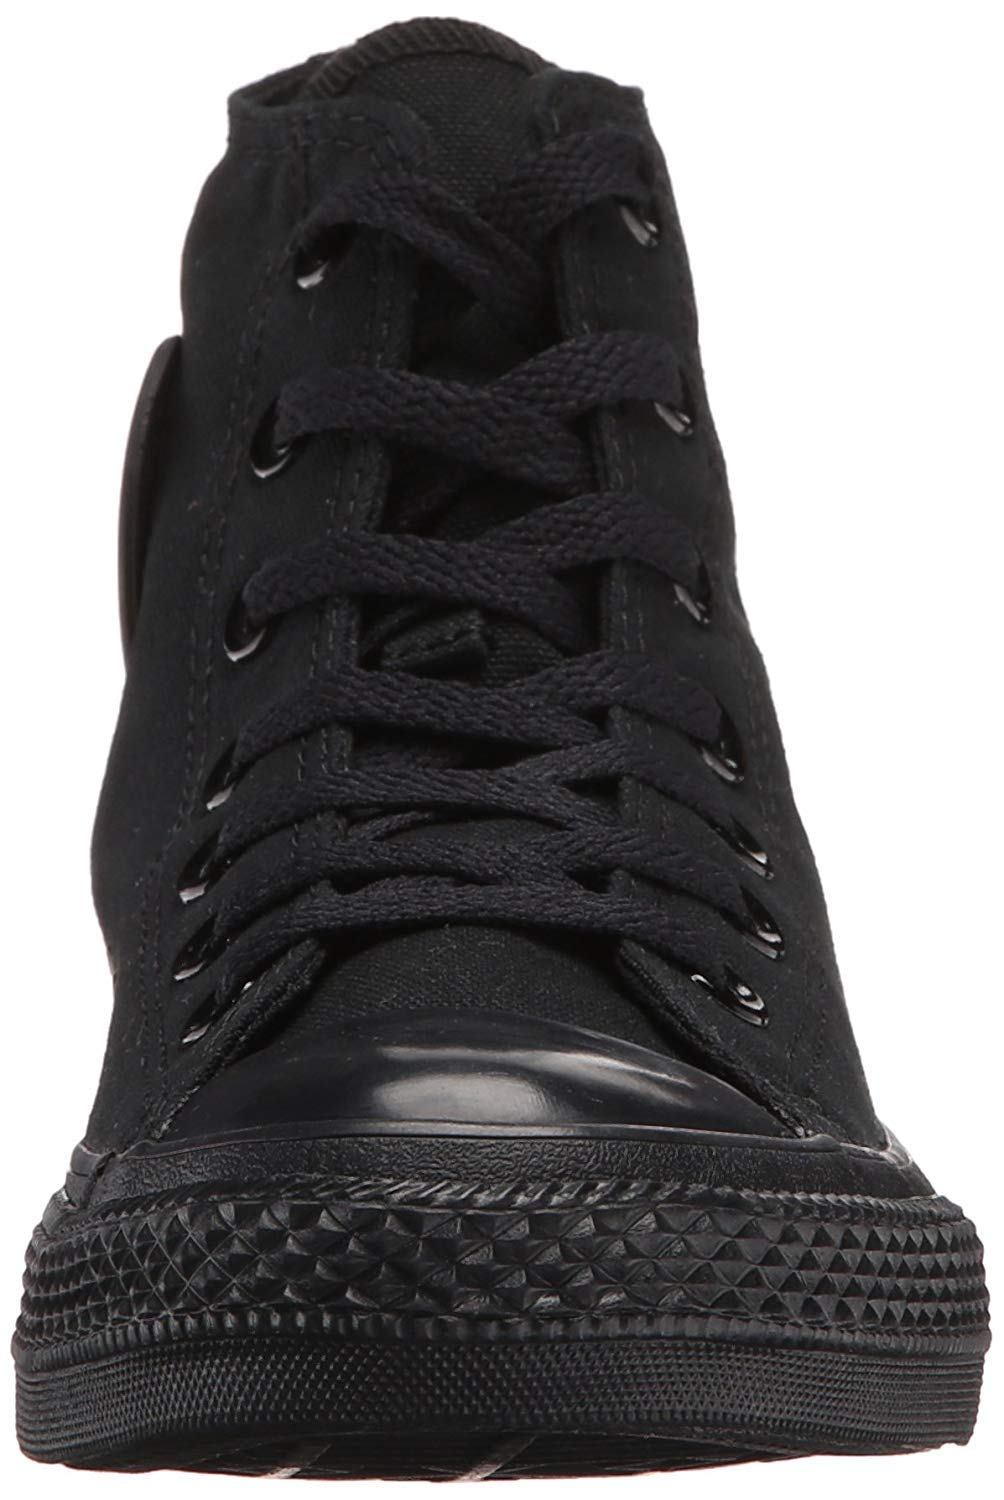 Converse Mens Chuck Taylor All Star High Top, 4.5 D(M) US, Black Monochrome by Converse (Image #2)